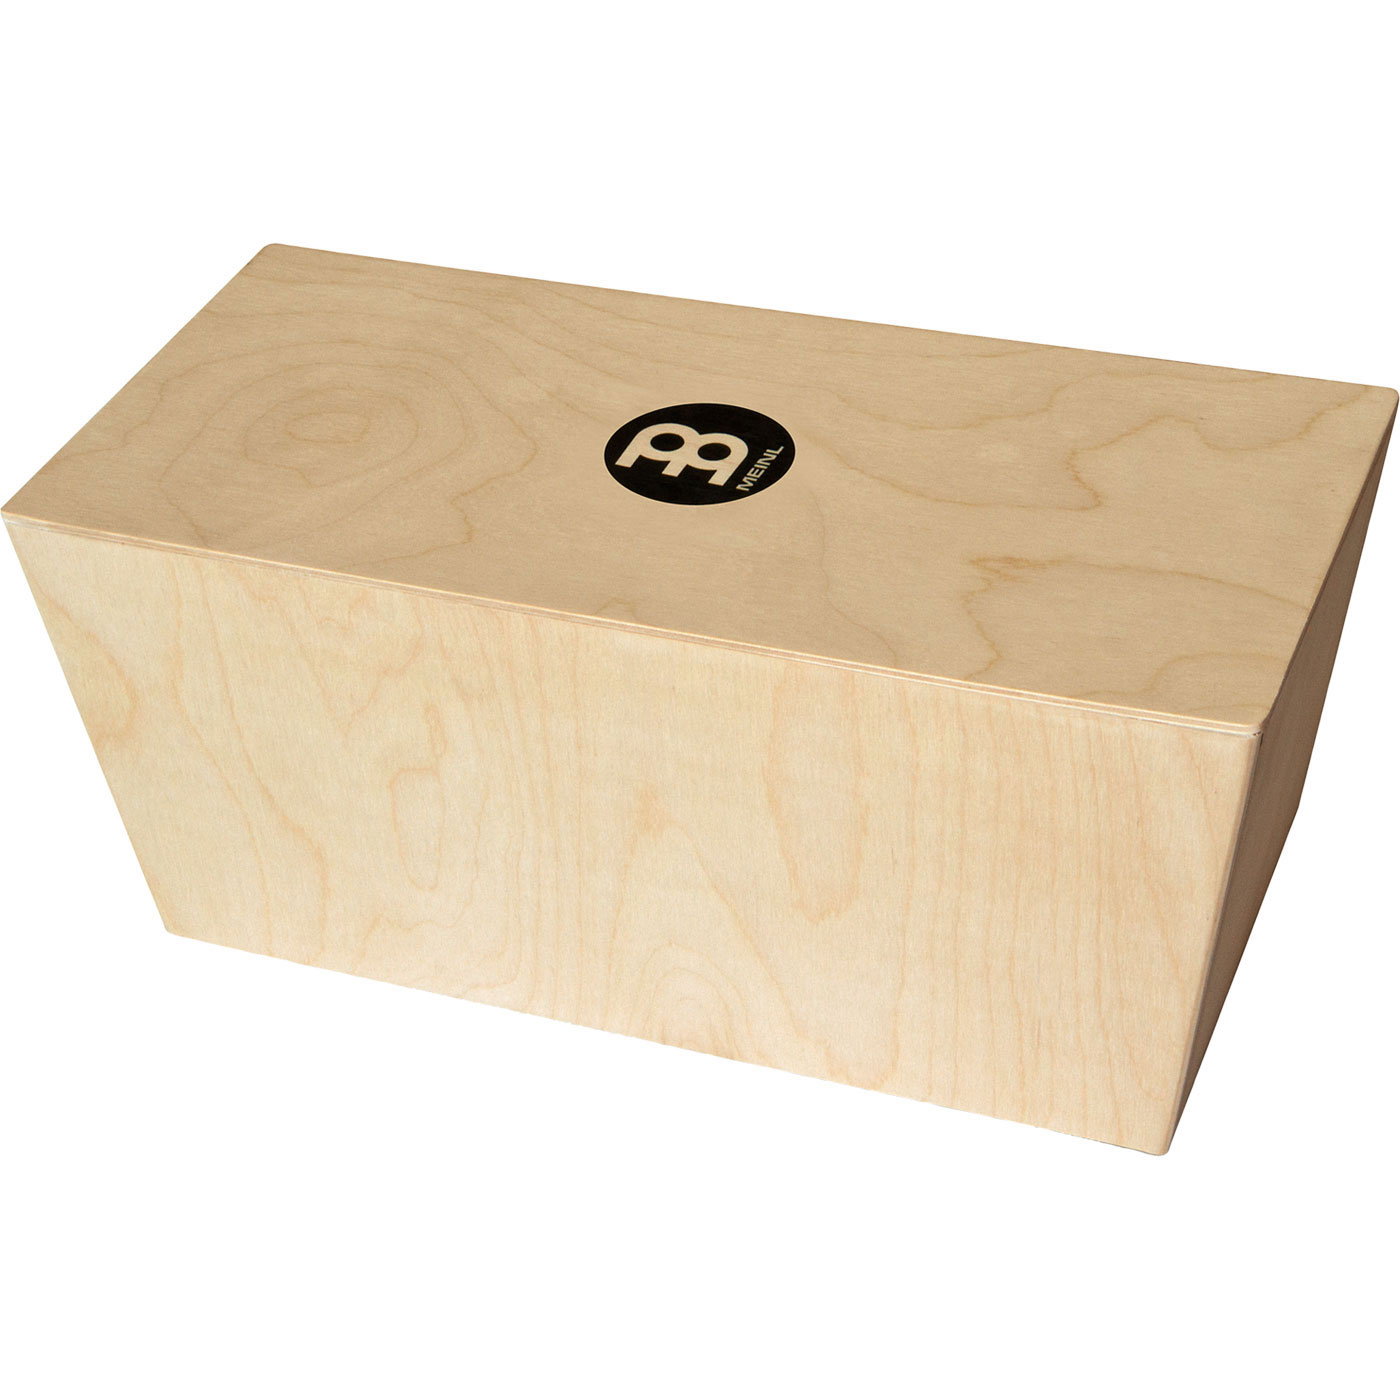 Meinl Make Your Own Bongo Cajon Kit